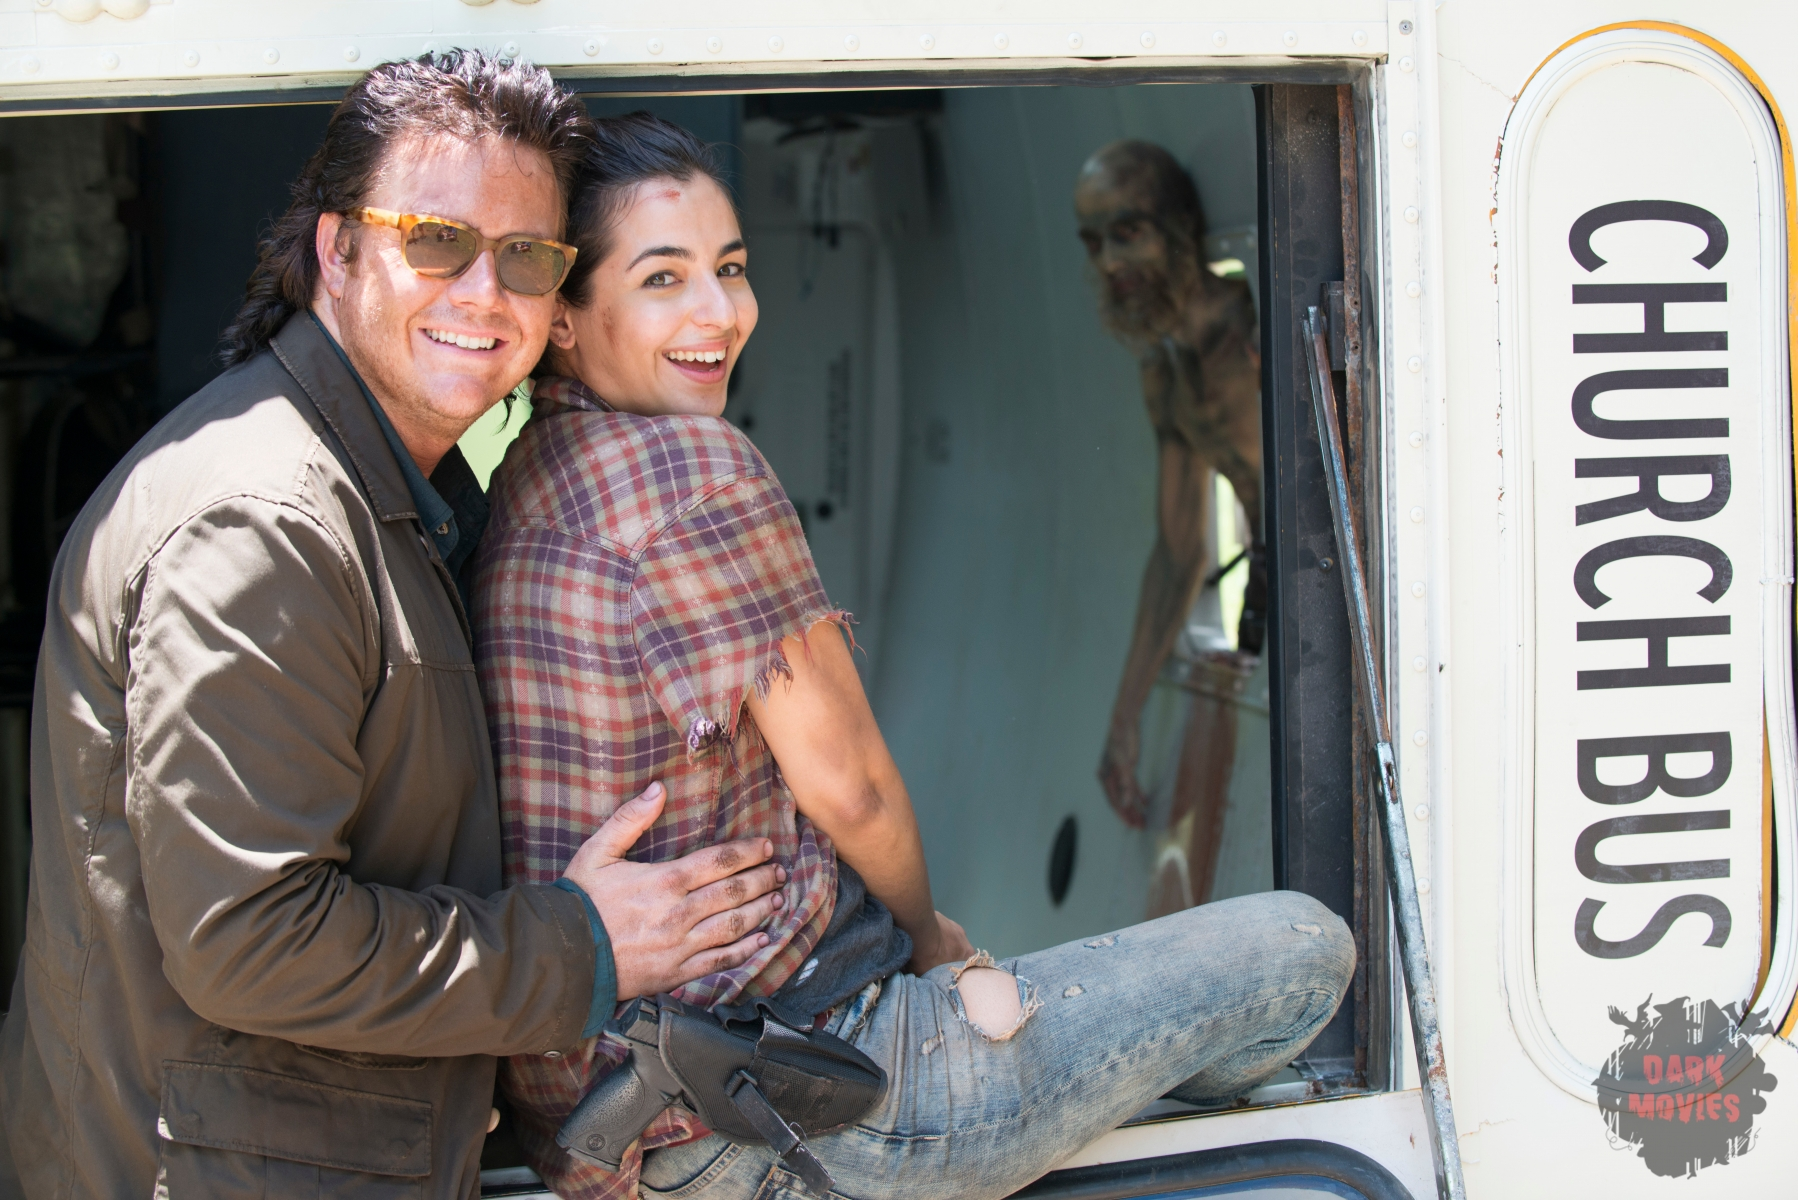 Josh McDermitt as Dr. Eugene Porter and Alanna Masterson as Tara Chambler - The Walking Dead _ Season 5, Episode 5 _ BTS - Photo Credit: Gene Page/AMC